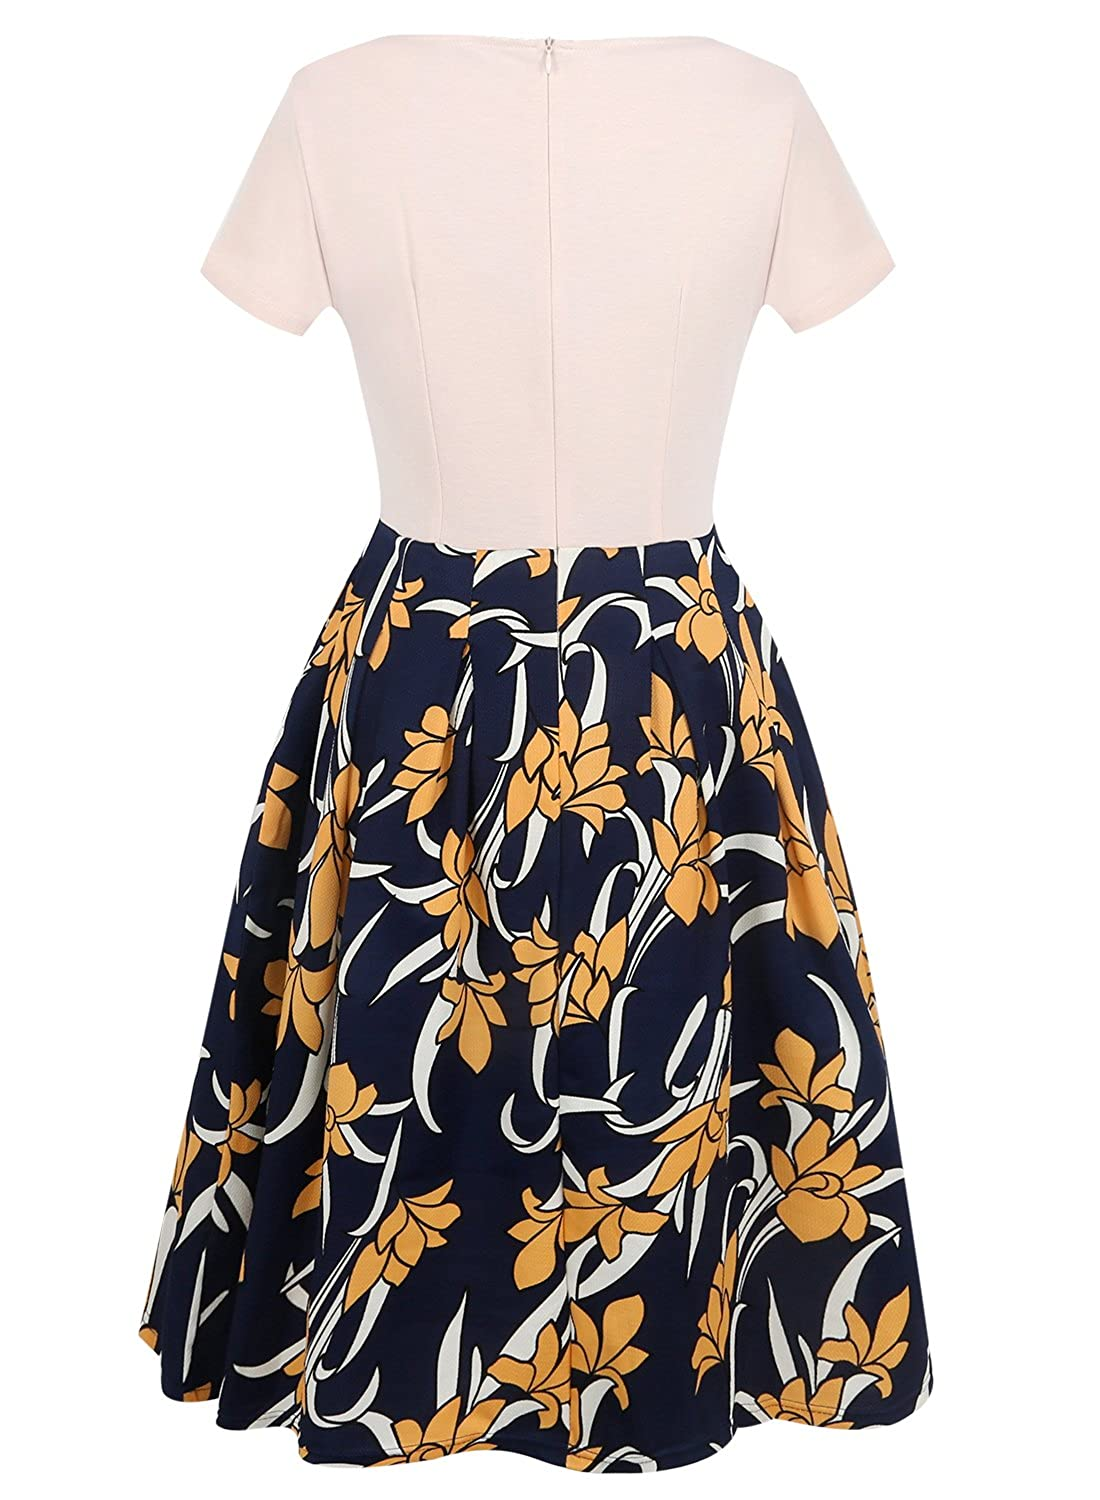 Oxiuly Womens Vintage Patchwork Pockets Puffy Swing Casual Party